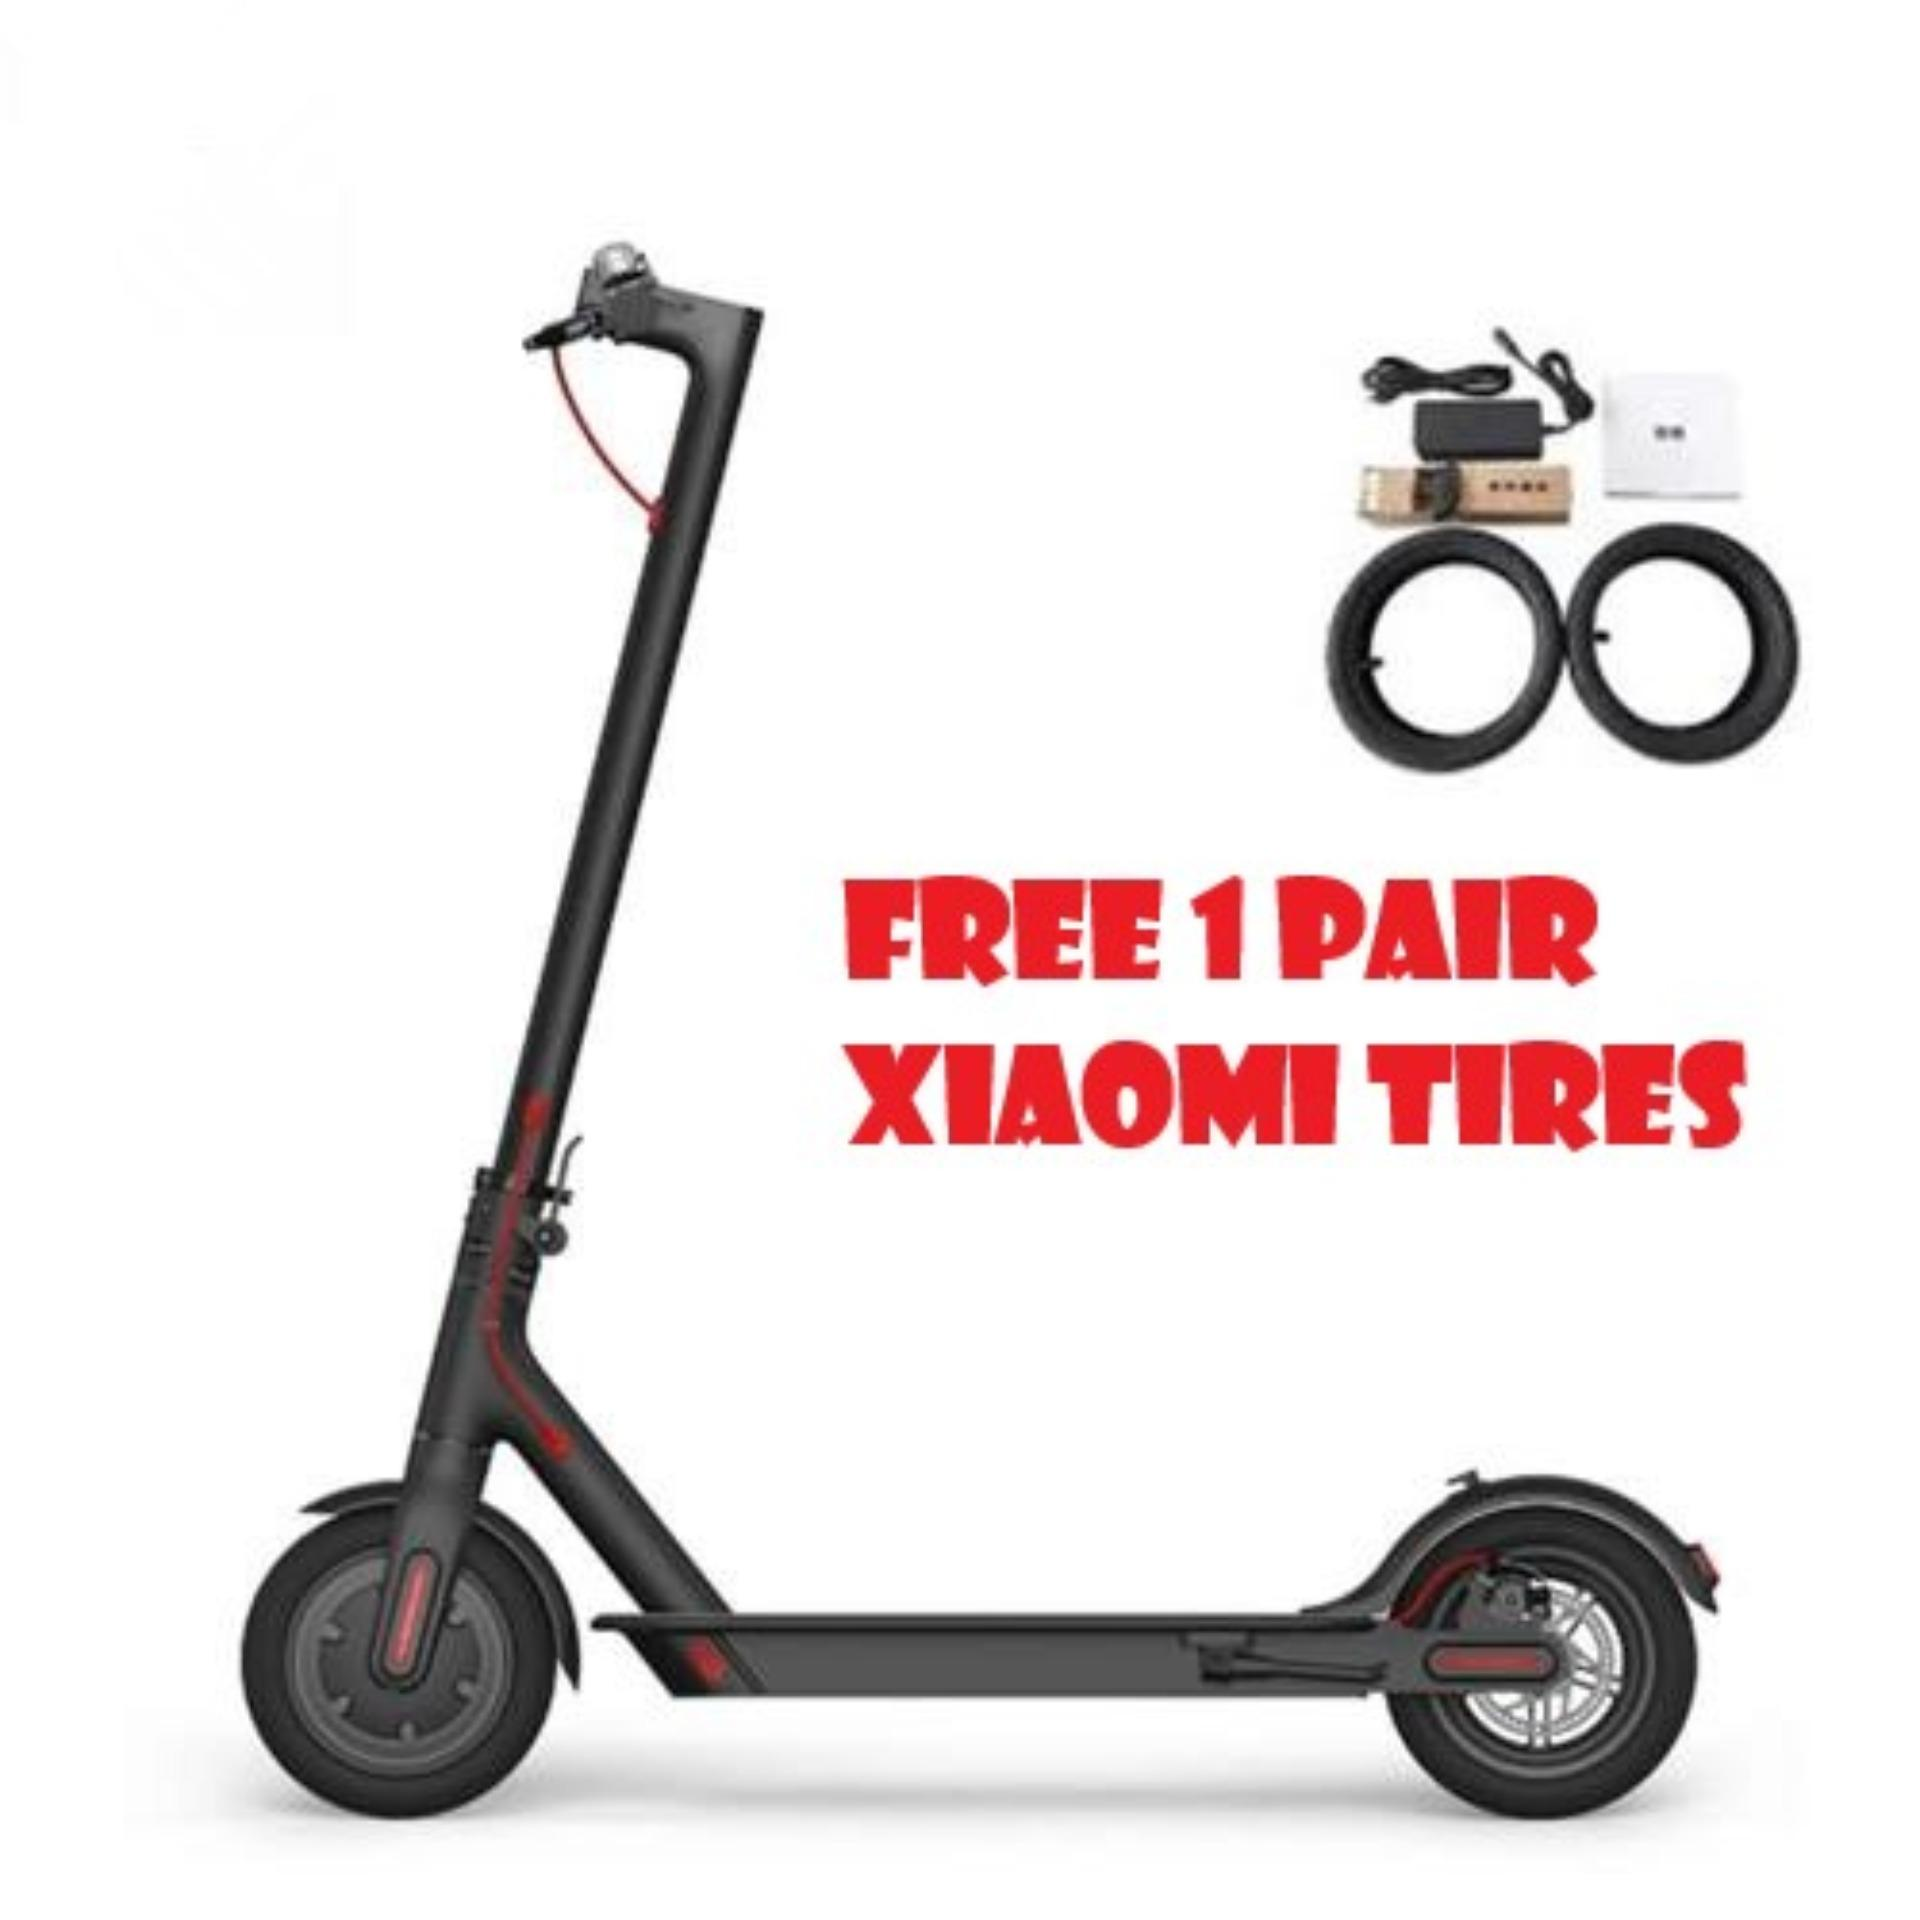 Xiaomi Mijia Folding Electric Scooter M365 Internatiol Version Limited  Edition With Free 1 pair of tire